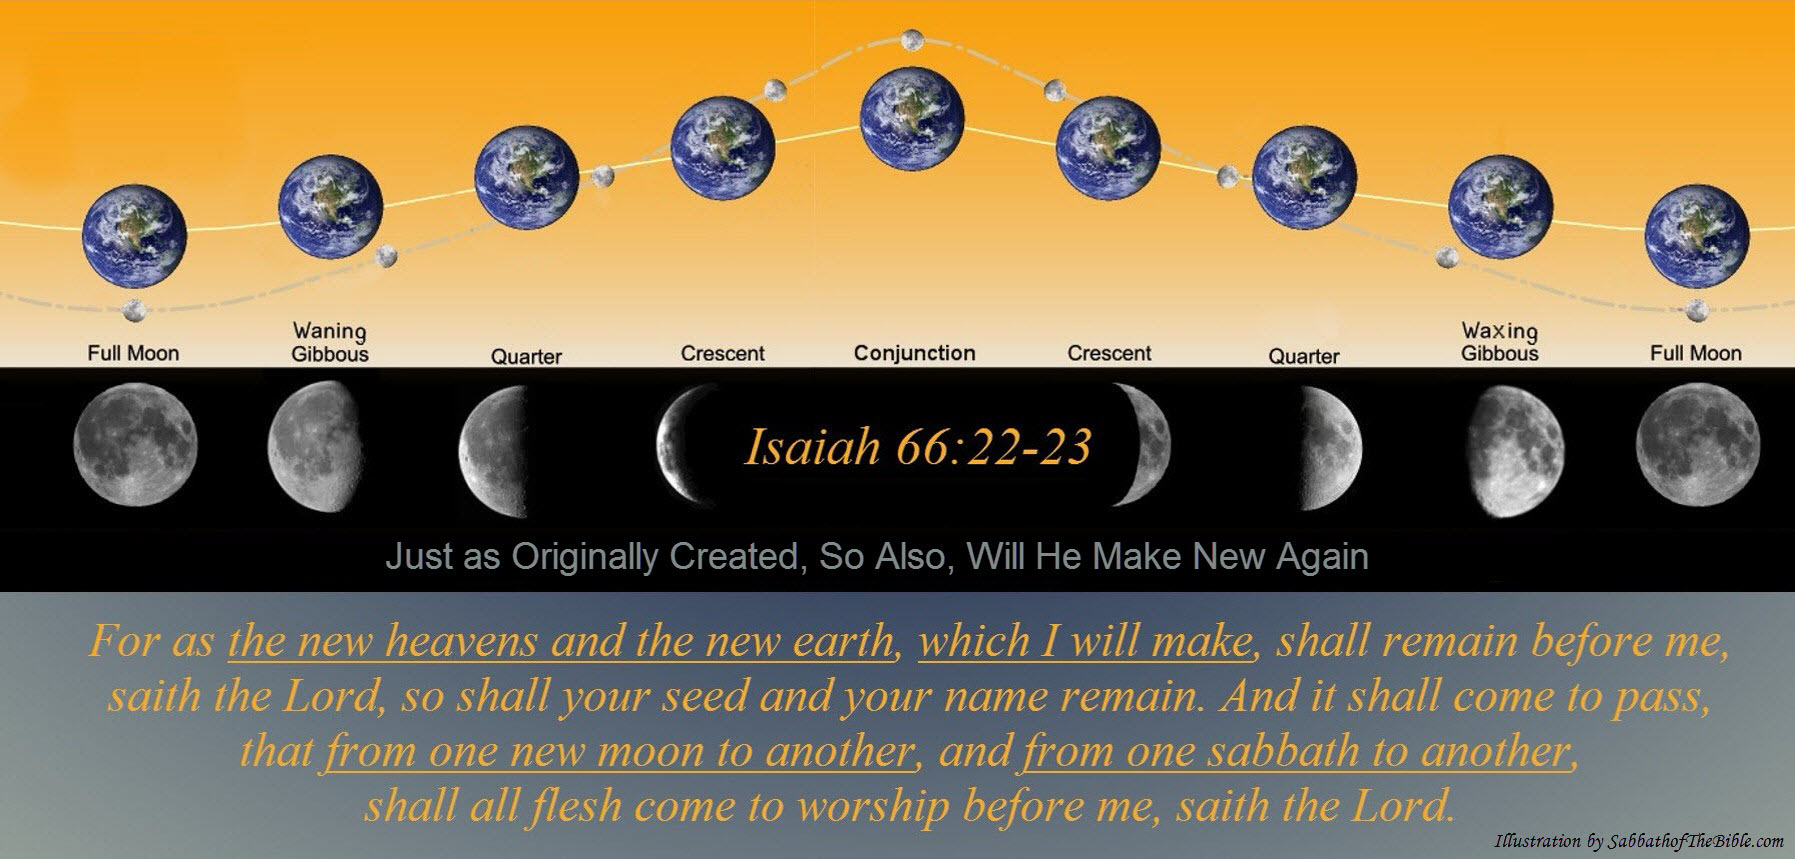 The moon was created in such a way, it gives us it's phases for days